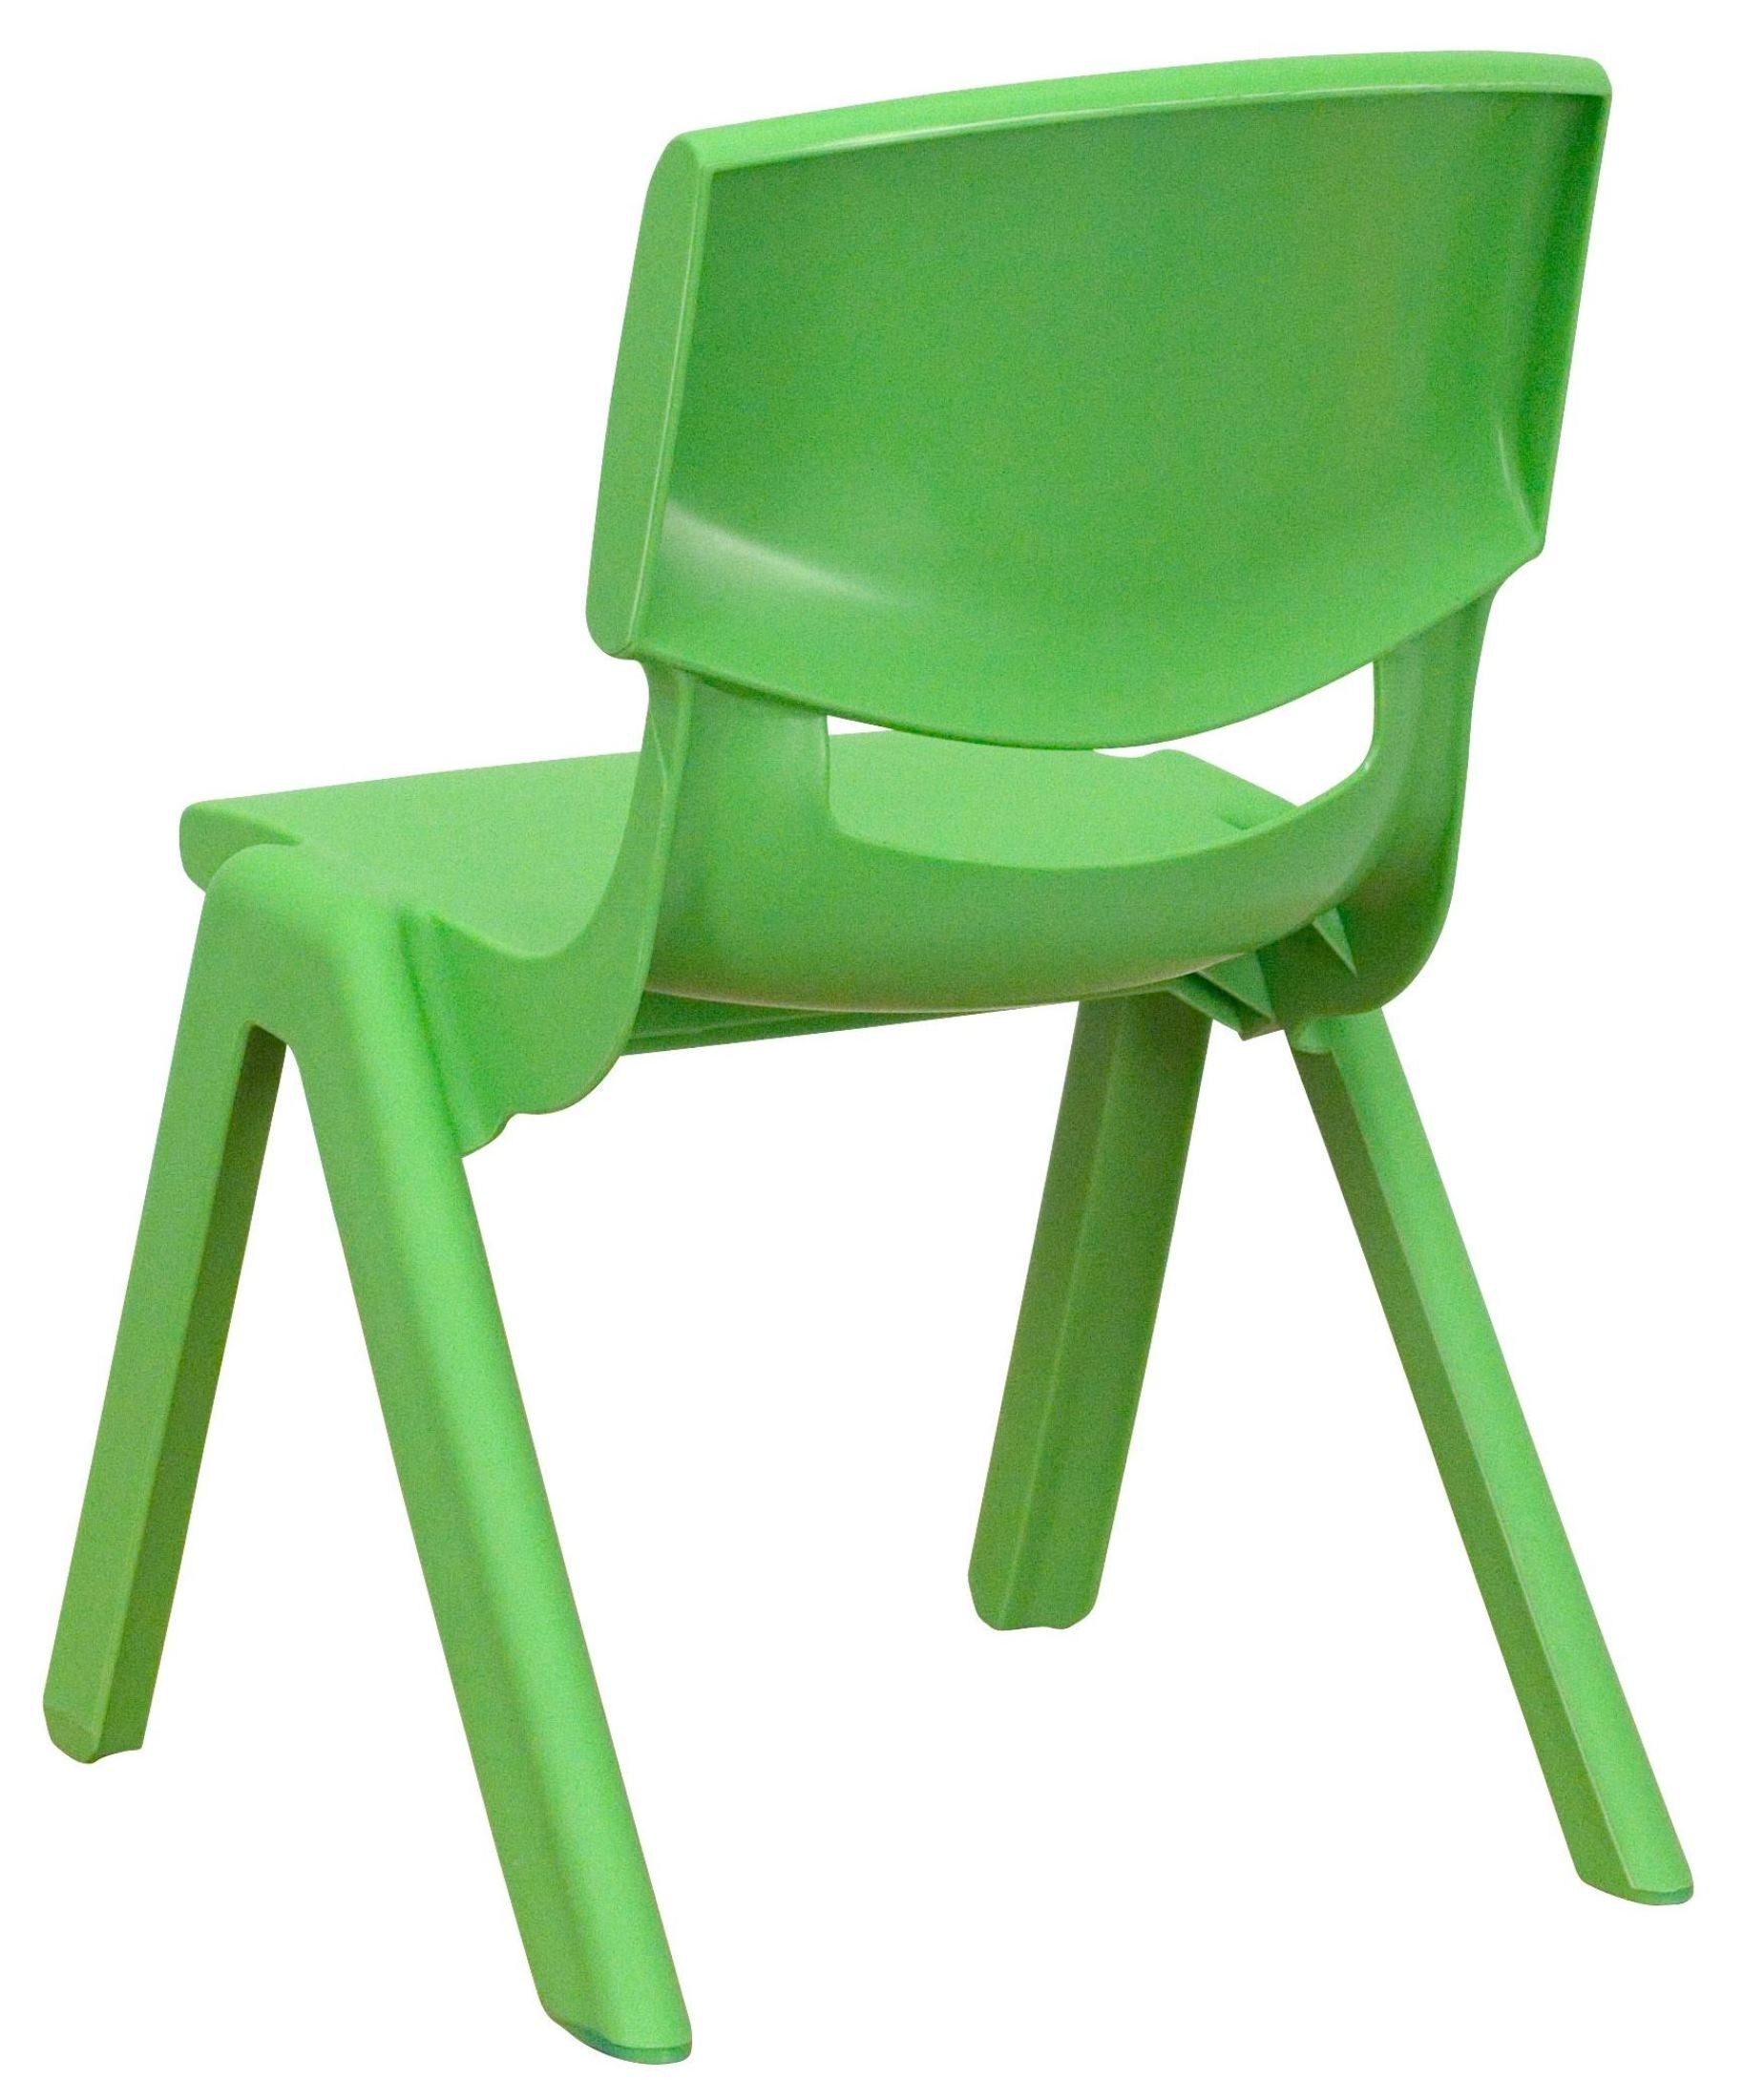 stackable resin chairs green hardwood folding 20 quoth plastic school chair from renegade